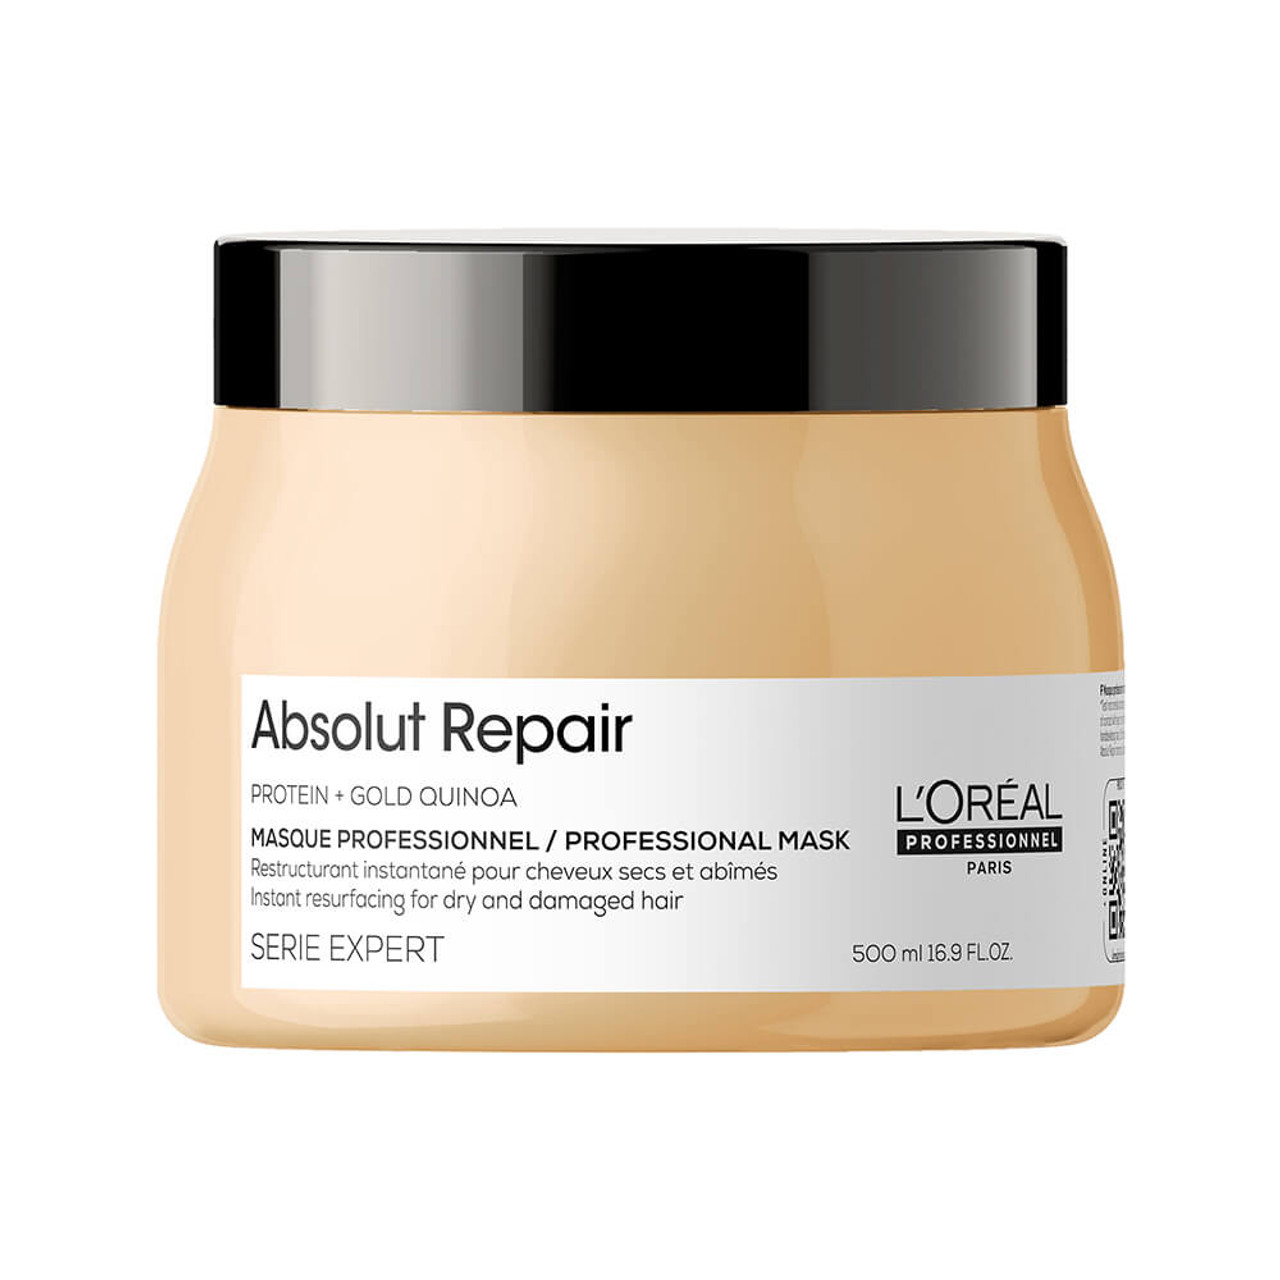 L'Oreal Professionnel Serie Expert Absolut Repair Professional Mask 500ml  Absolut Repair Instant resurfacing mask offers the ultimate professional deep resurfacing experience for medium - thick damaged and dry hair. The resurfacing mask helps to visibly resurface damaged hair resulting in up to 77%* less fiber surface damage. The hair is manageable and up to 7X** shinier after the treatment routine including the Absolut Repair resurfacing shampoo. This luxurious mask has a creamy texture, which envelopes your damaged hair with care without weighing it down.